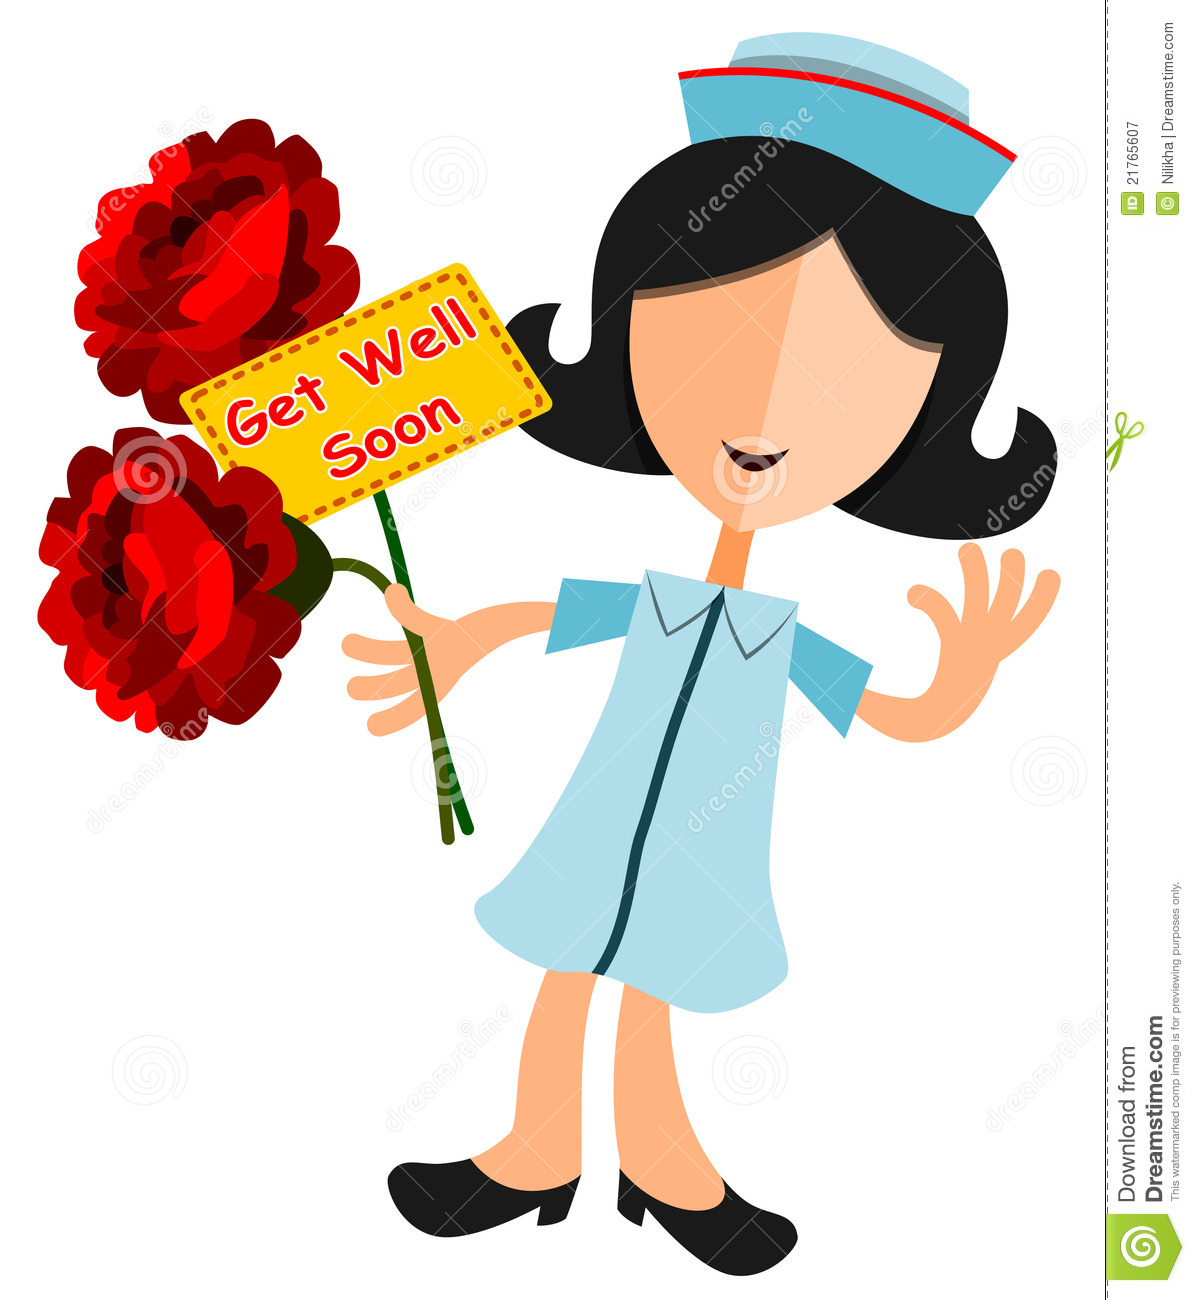 get well soon stock illustration illustration of expression 21765607 rh dreamstime com free clipart get well soon get well soon clipart free